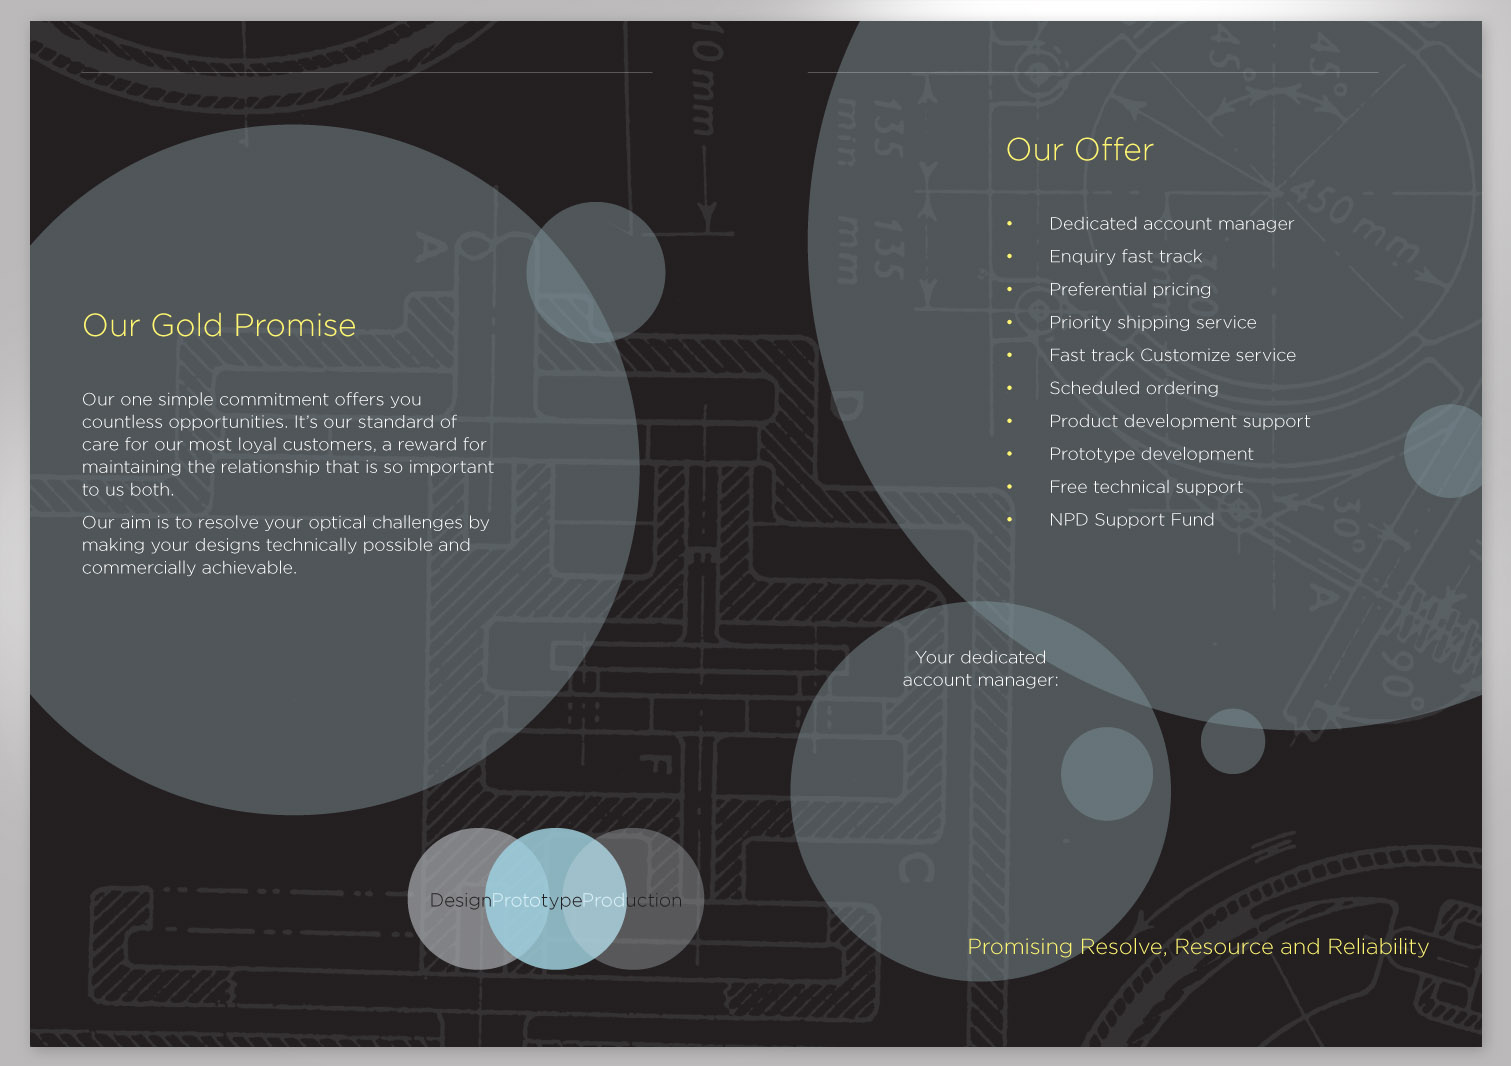 Comar Optics Limited - Gold Promise - Proposal Pages 2 and 3